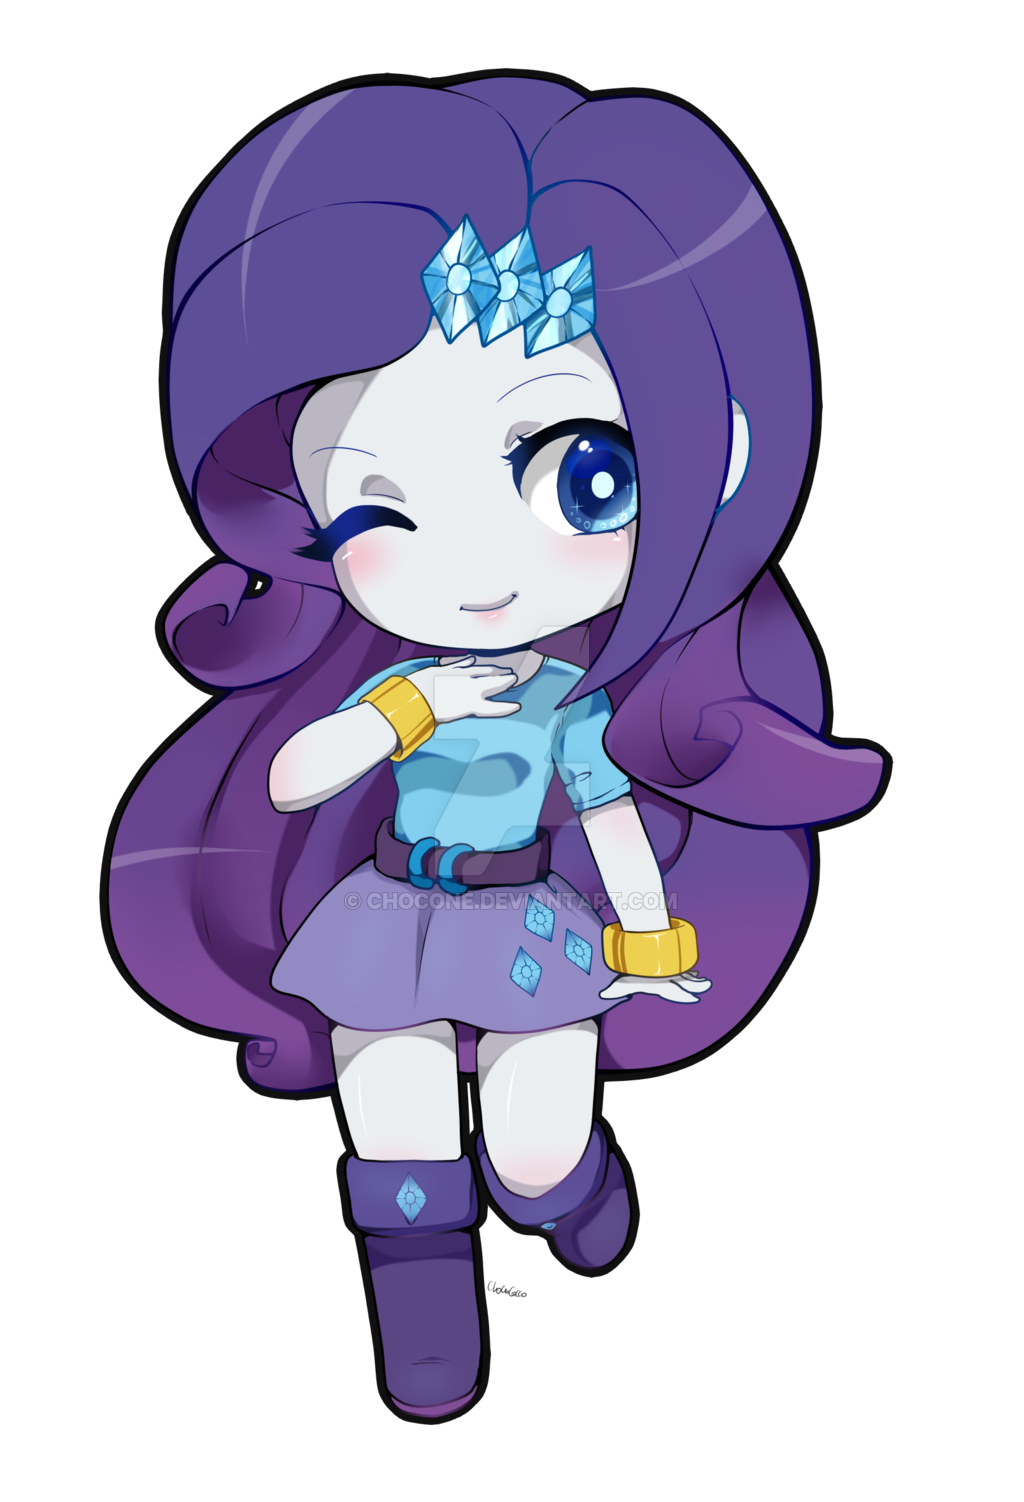 Einstein clipart chibi. Rarity equestria girl cute